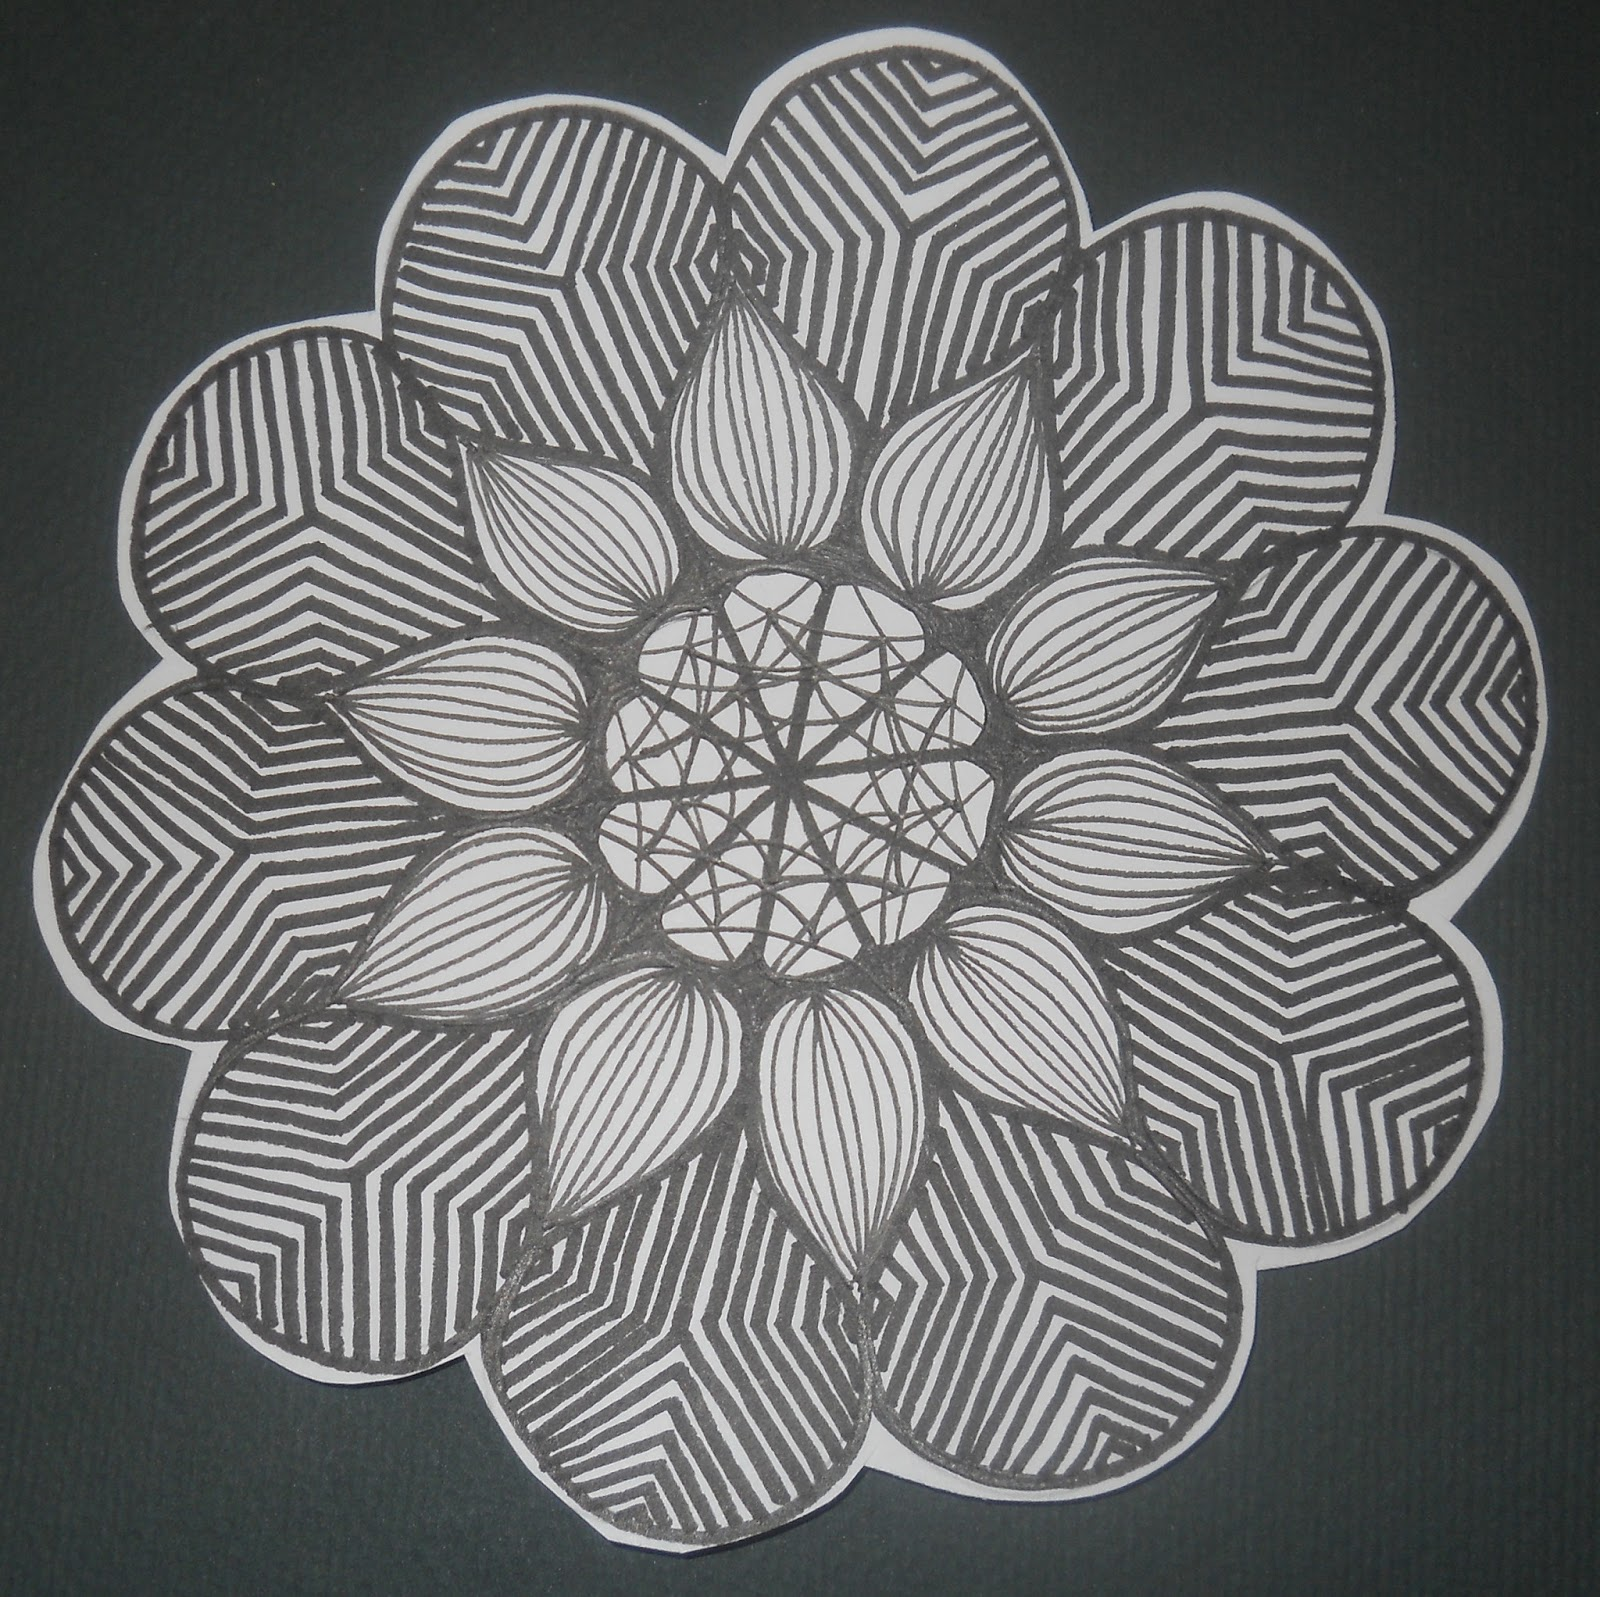 Black And White Scratch Art Ideas Pictures to Pin on ...